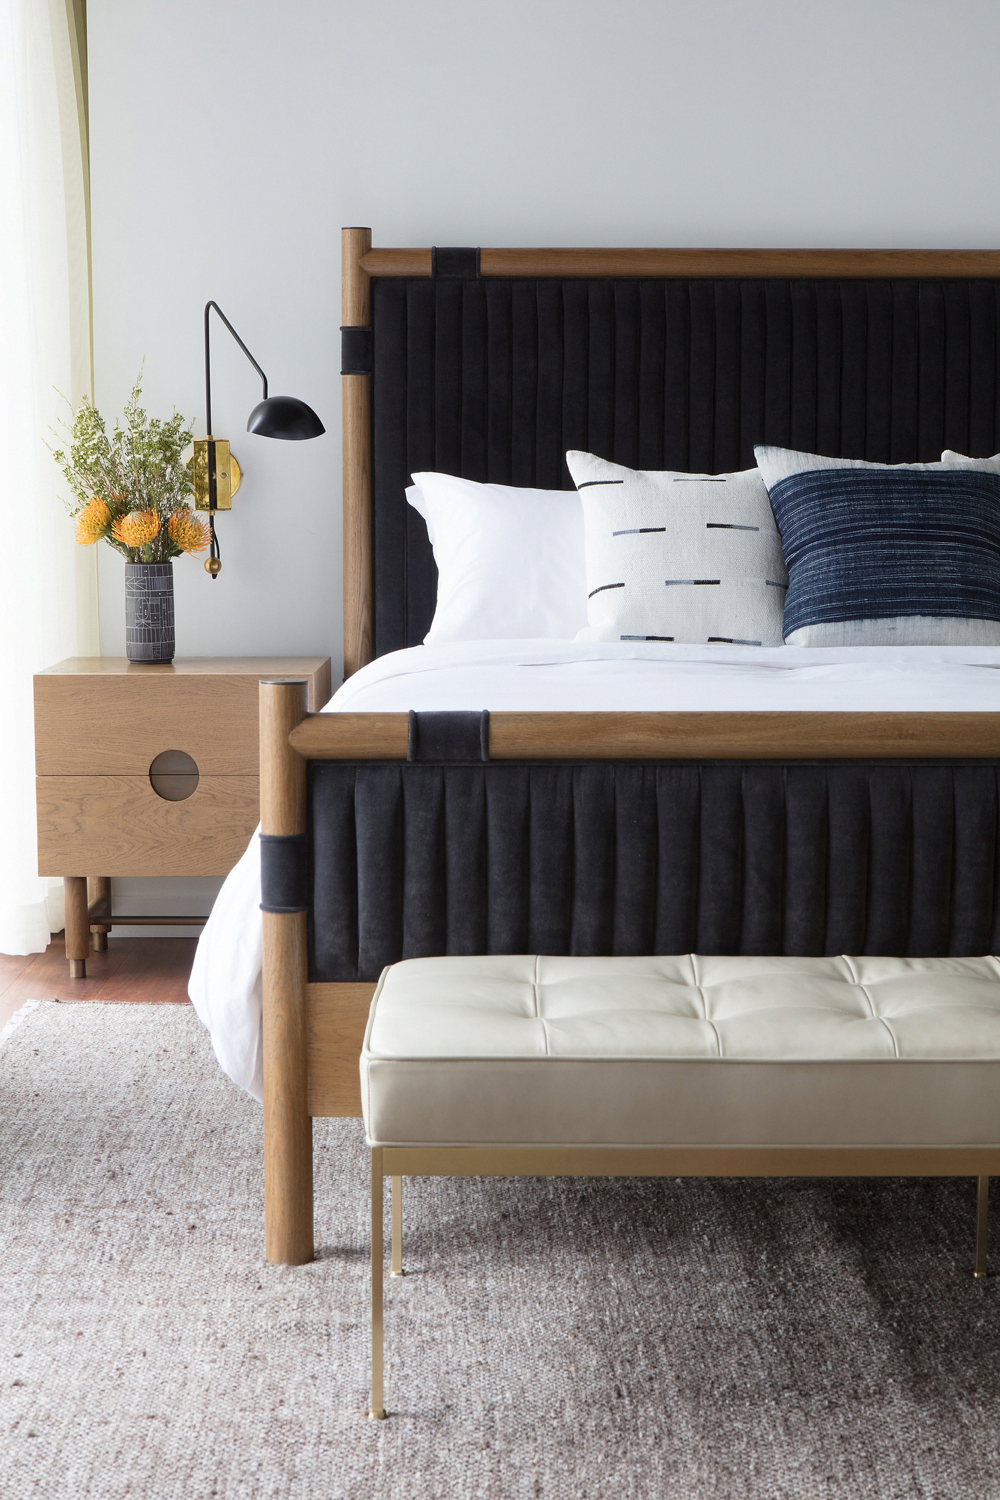 The Chiselhurst Bed Is An Upholstered Bed With A Solid American